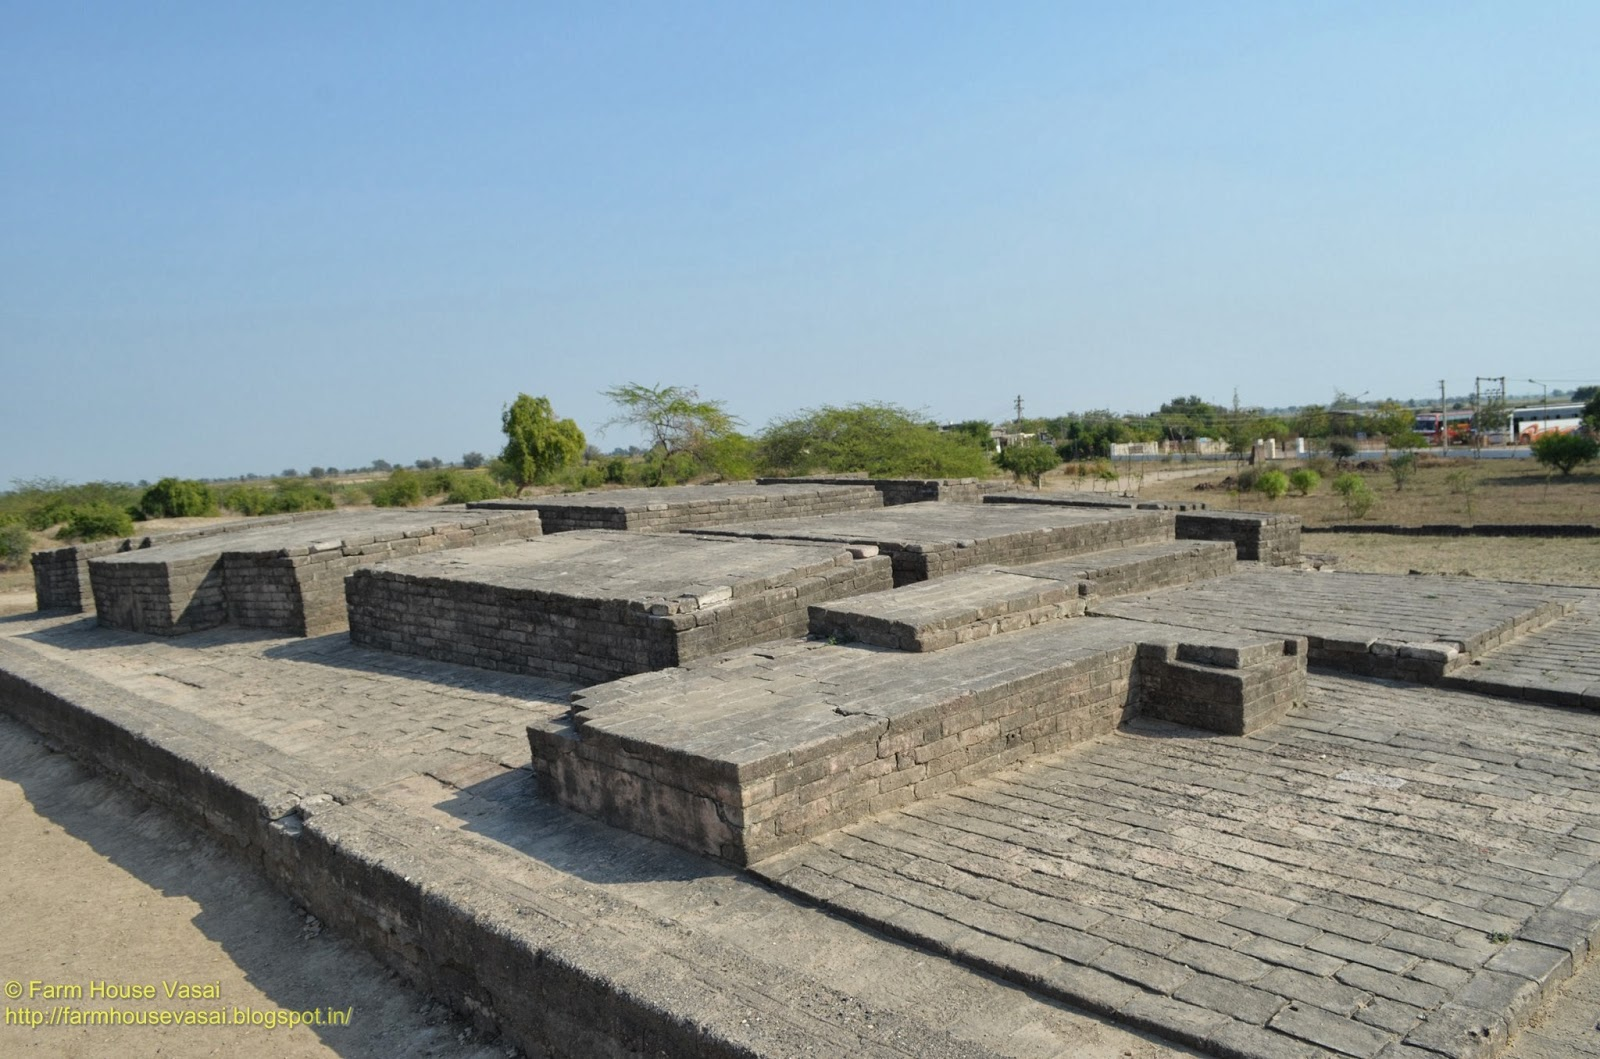 """harappan civilization Located in the indus valley on the western border of india, the harappan civilization is one of the largest ancient civilizations that has """"flown under the radar"""" as very few people have heard of it."""